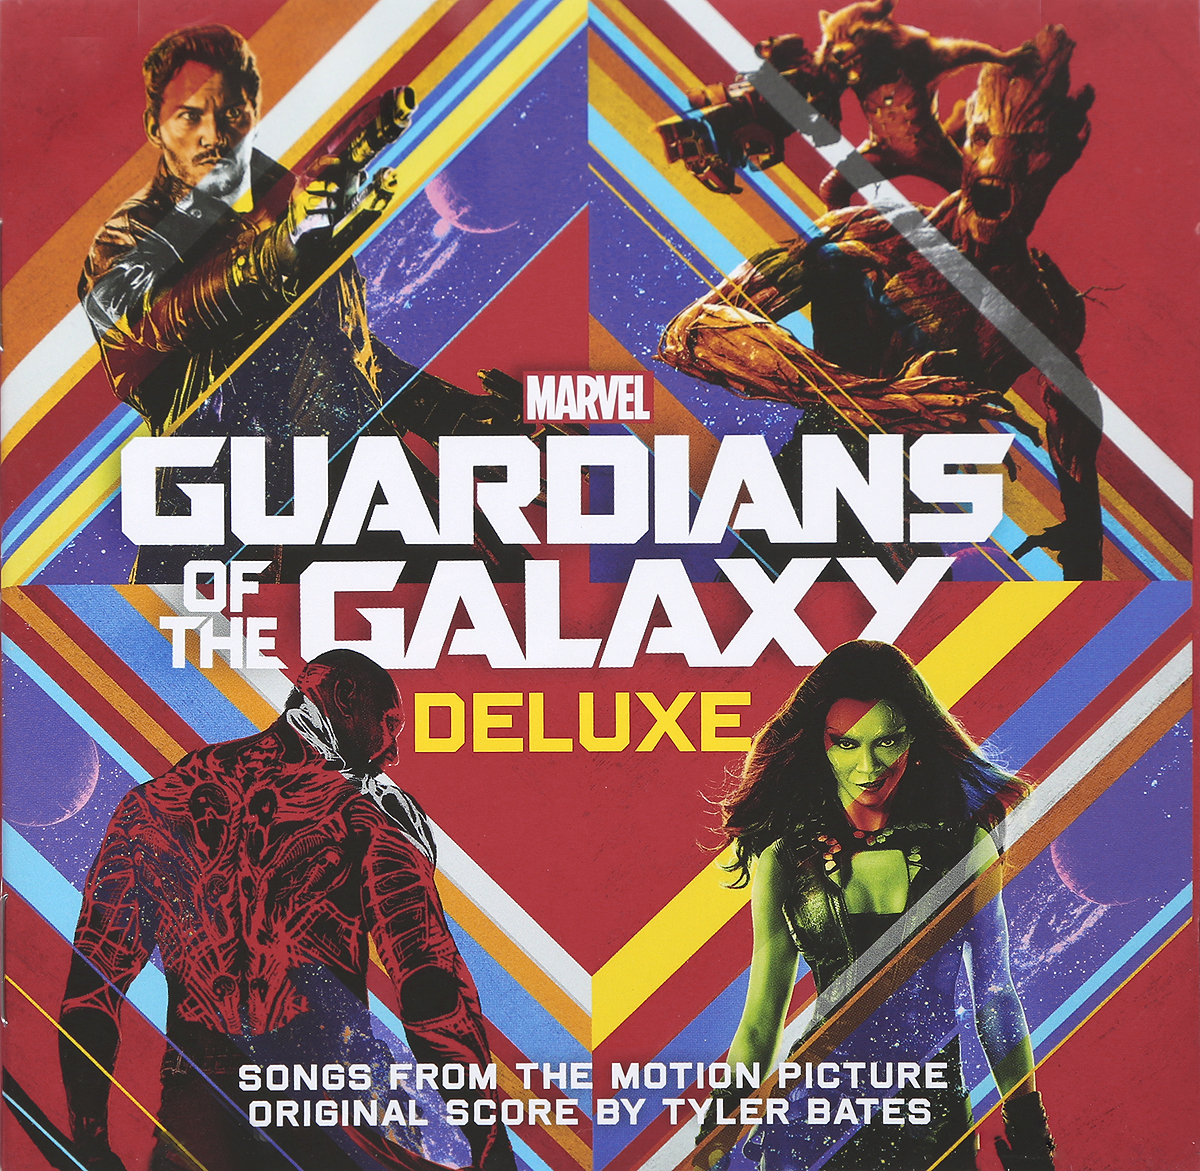 Guardians Of The Galaxy (Deluxe) (2 CD) cd art of noise in visible silence deluxe